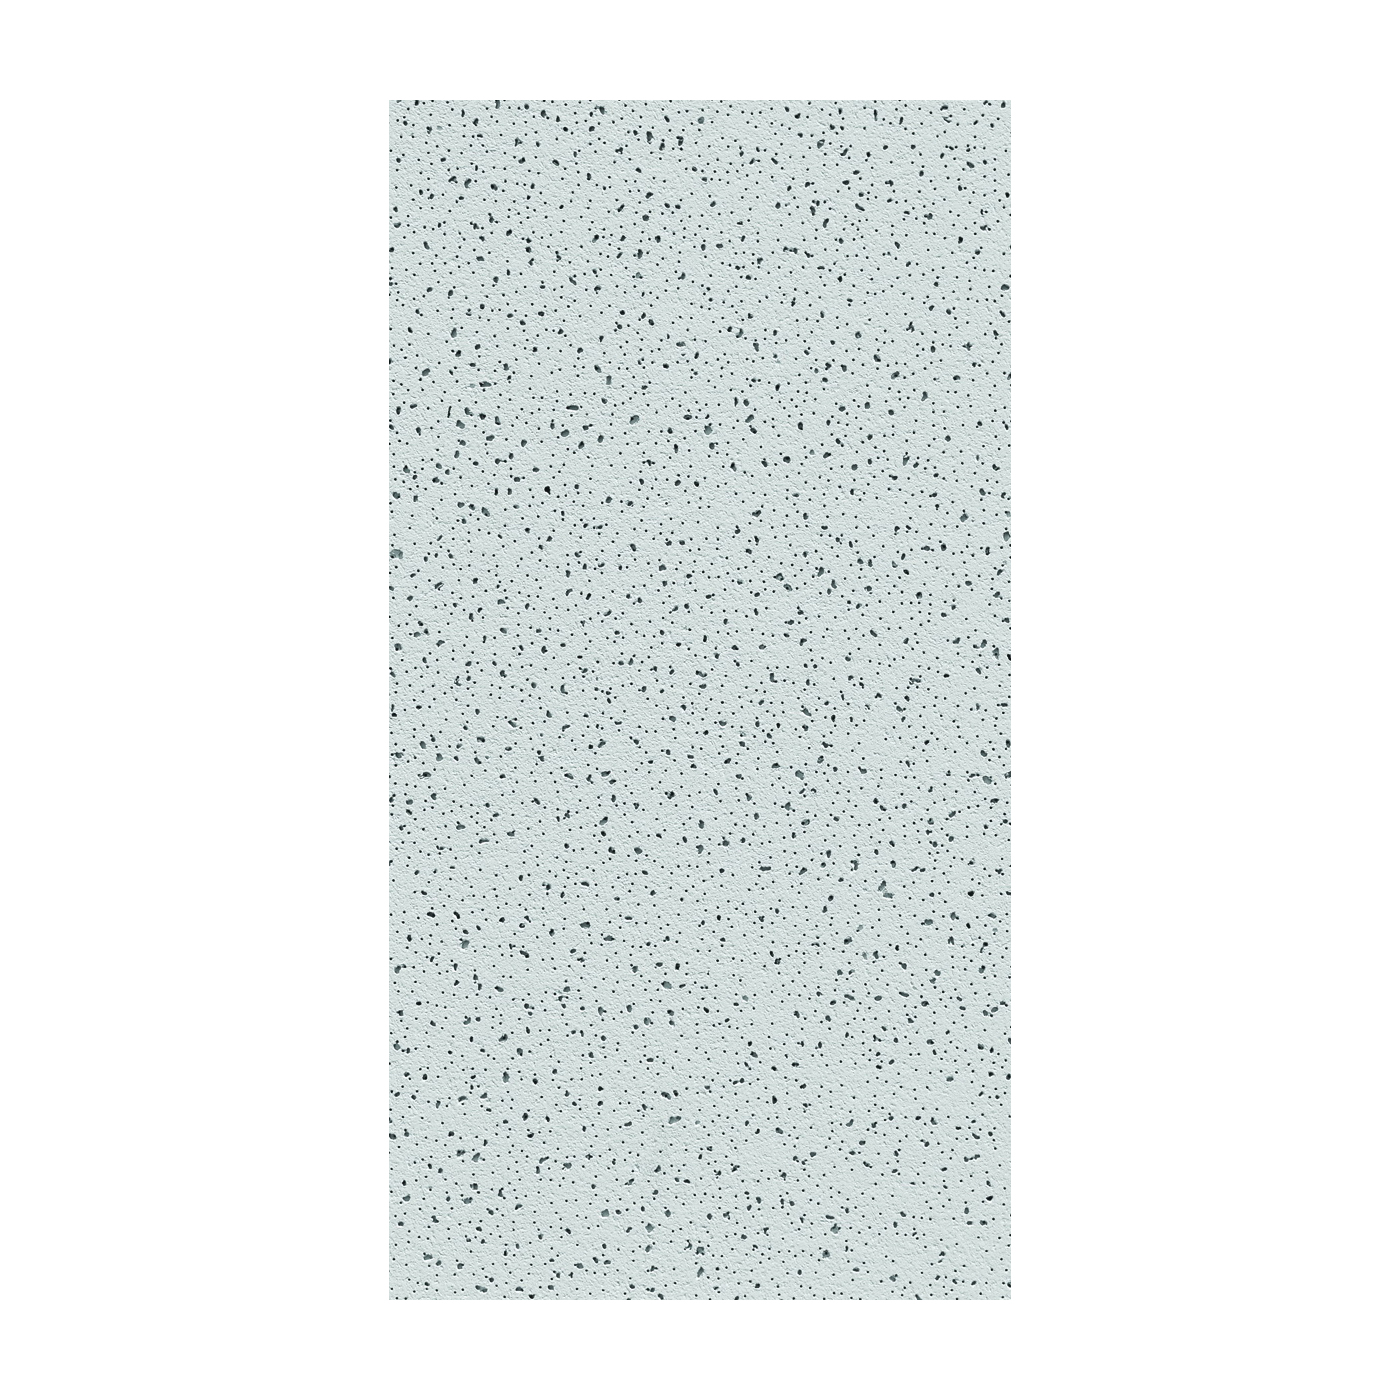 Picture of USG RADAR R2315 Ceiling Panel, 2 ft L, 2 ft W, 5/8 in Thick, Fiberboard, White